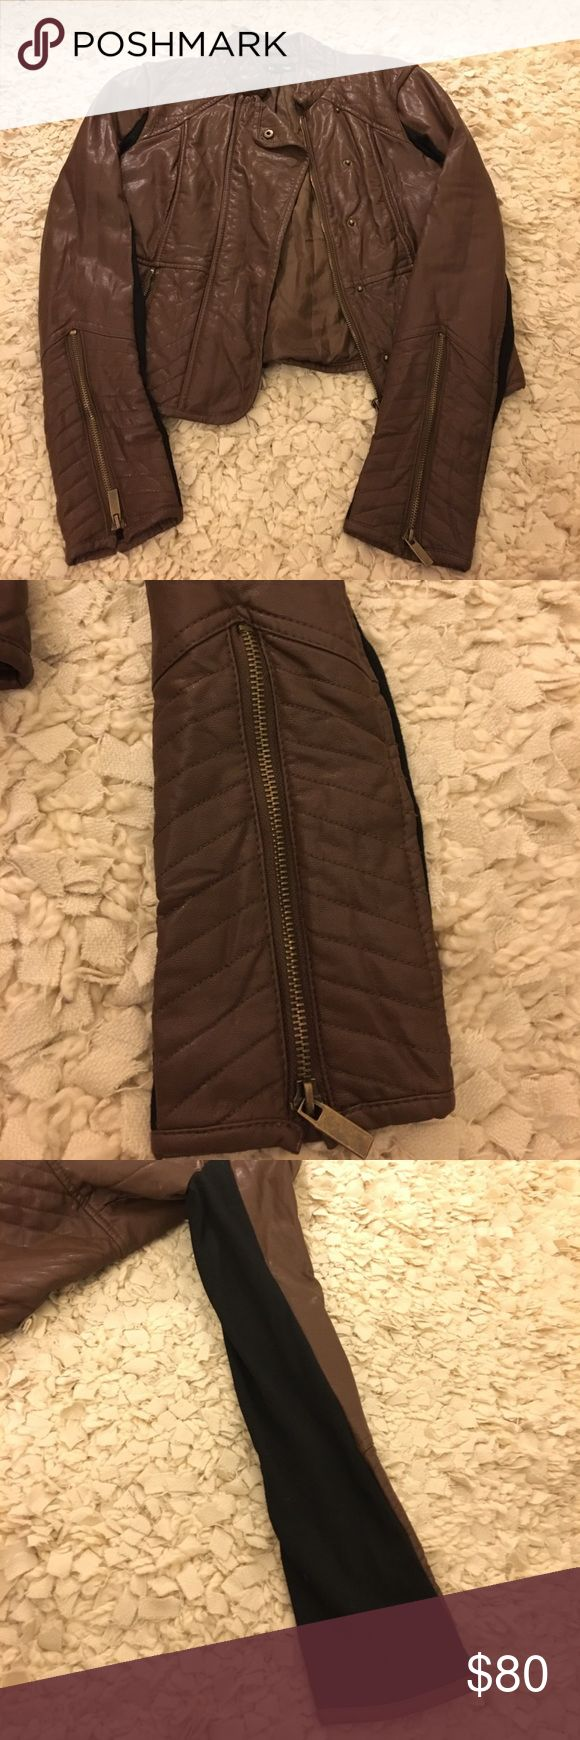 Bebe brown leather jacket This is a Bebe brown zip up leather jacket with black accent sleeves. It is a center zip with two front zipper pockets. It is also gently worn. bebe Jackets & Coats